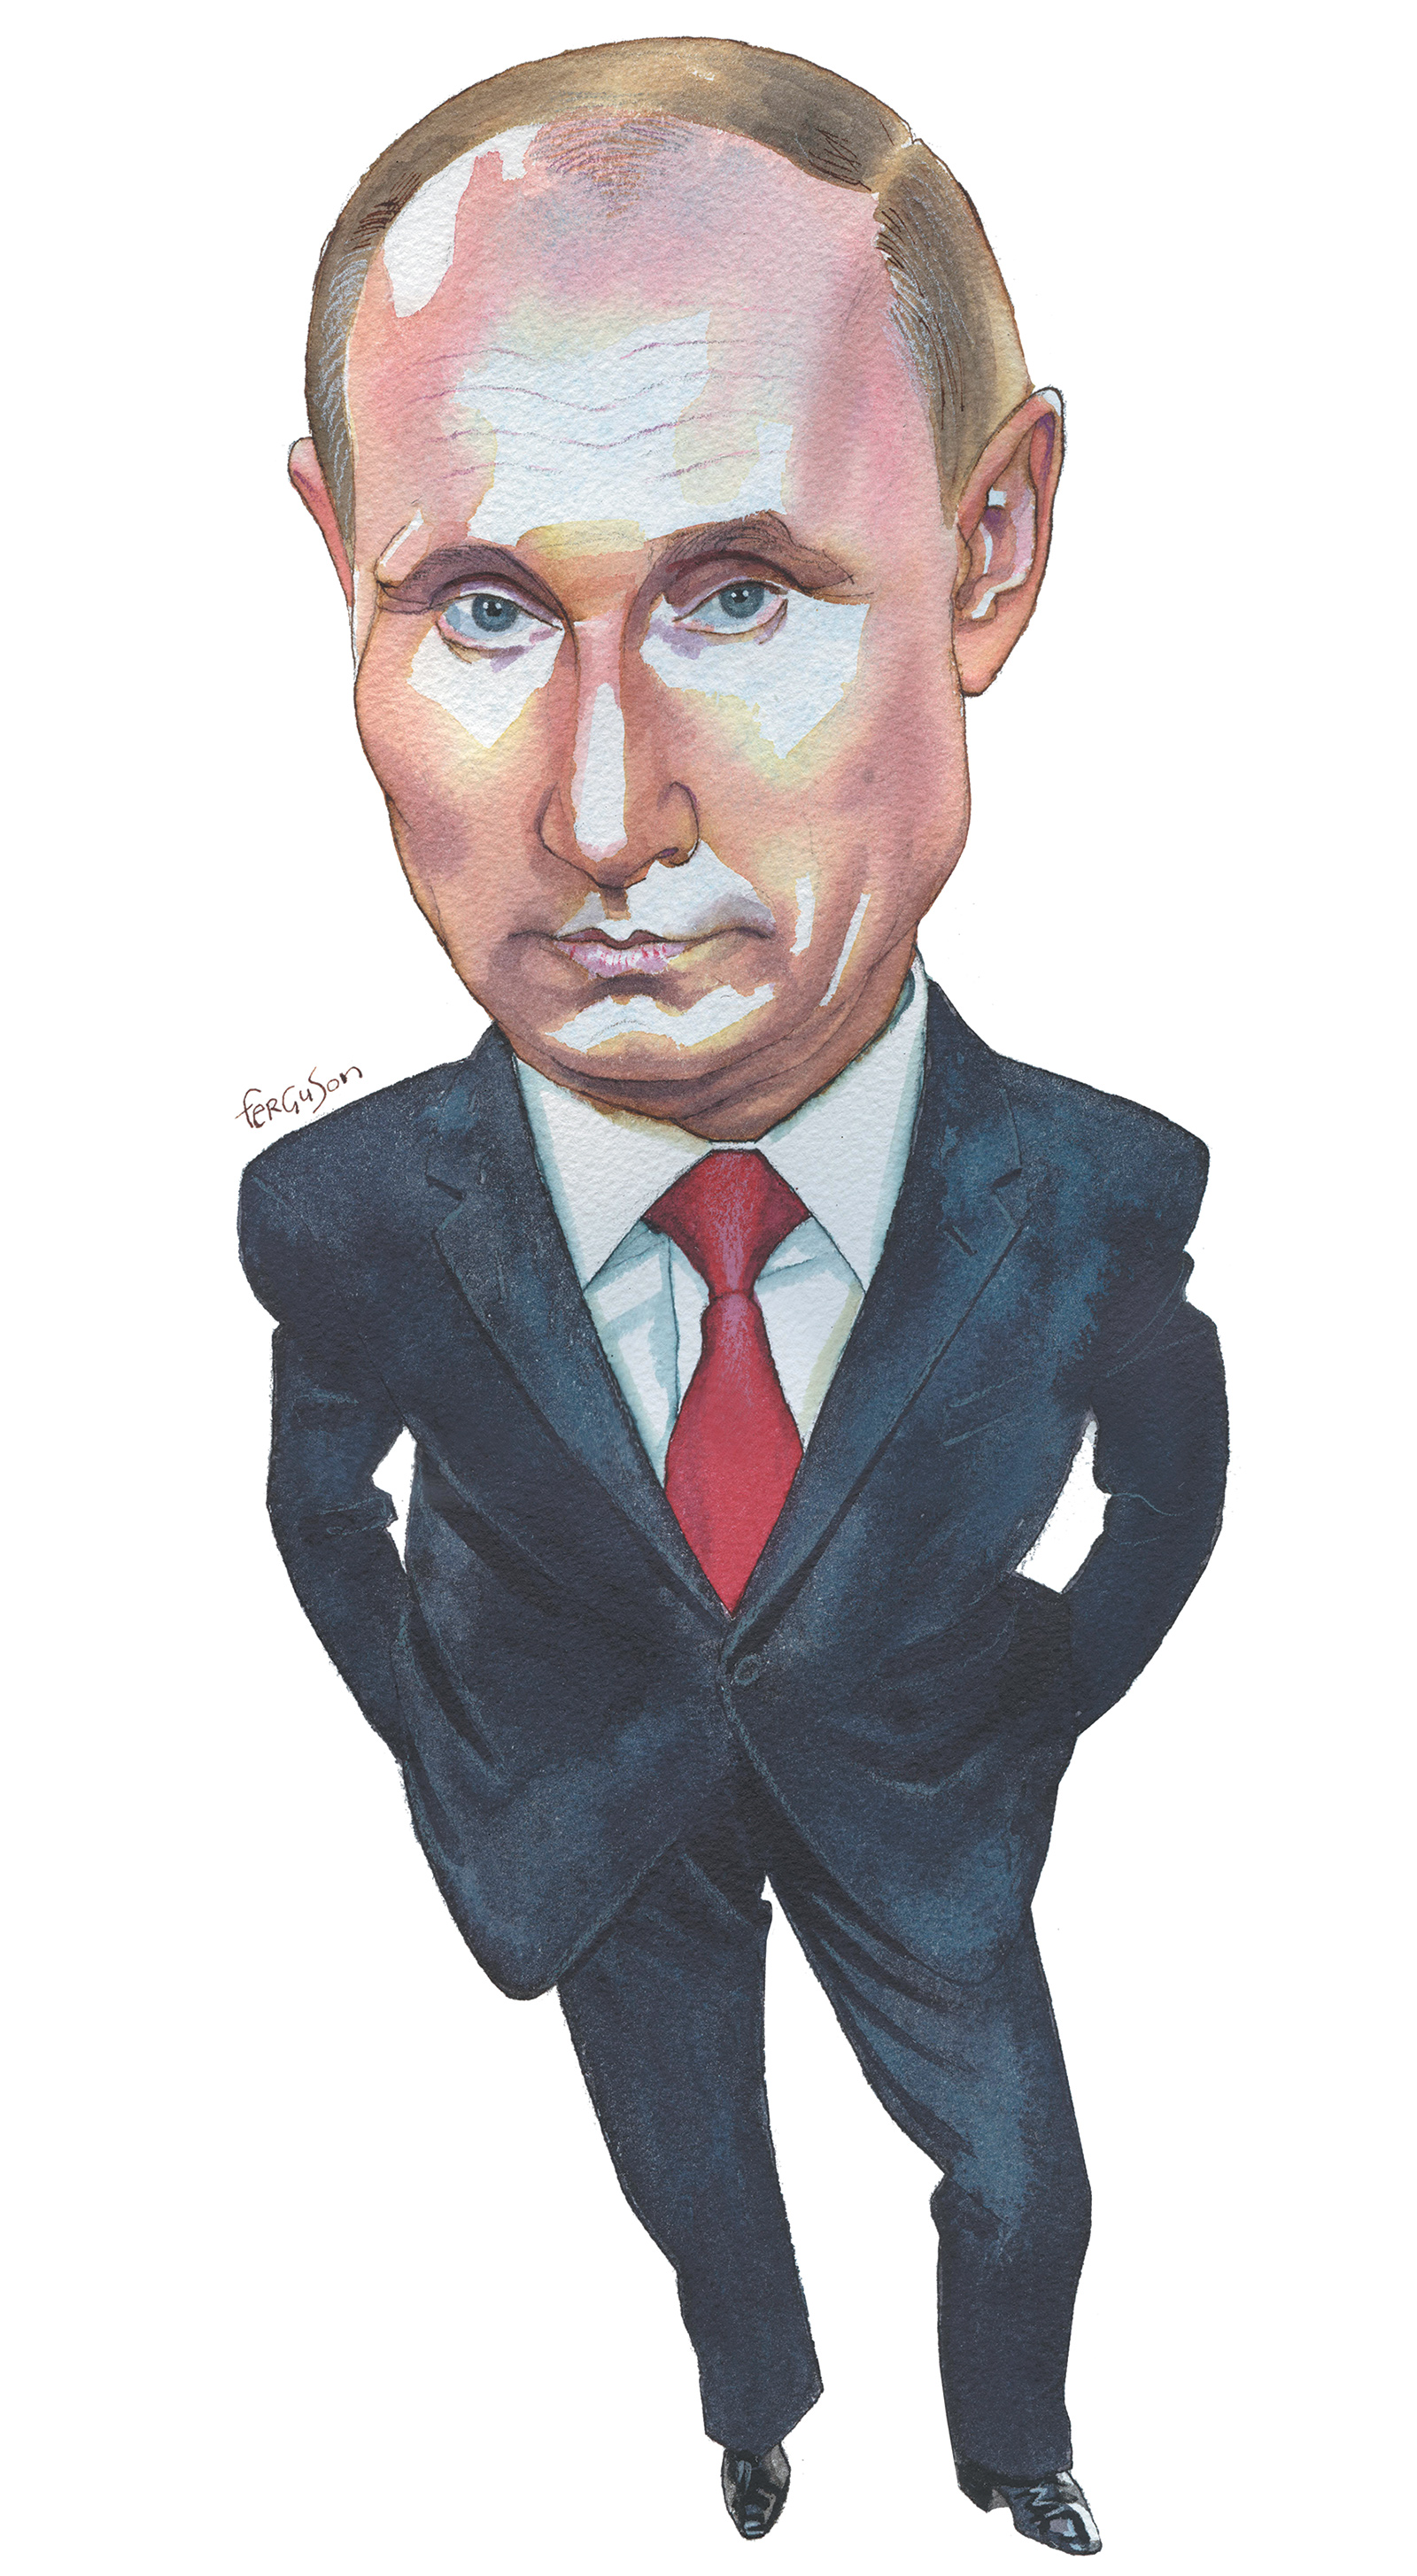 Welcome Fall Wallpaper The Real Power Of Putin By Benjamin Nathans The New